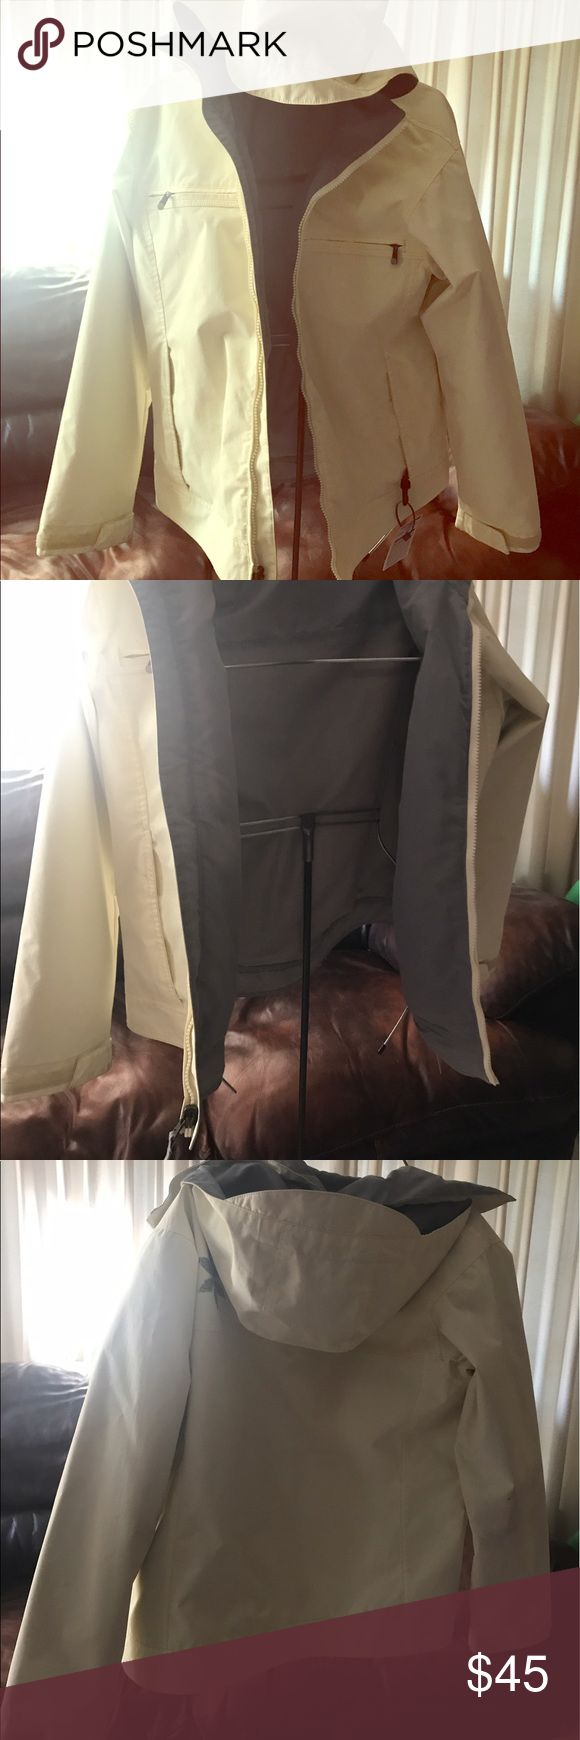 Women's Burton snowboarding jacked Used Burton women's snowboarding jacket a few scuffs on back arm as shown in picture not bad though.color is a cream white. Pockets on inside as well. Burton Jackets & Coats